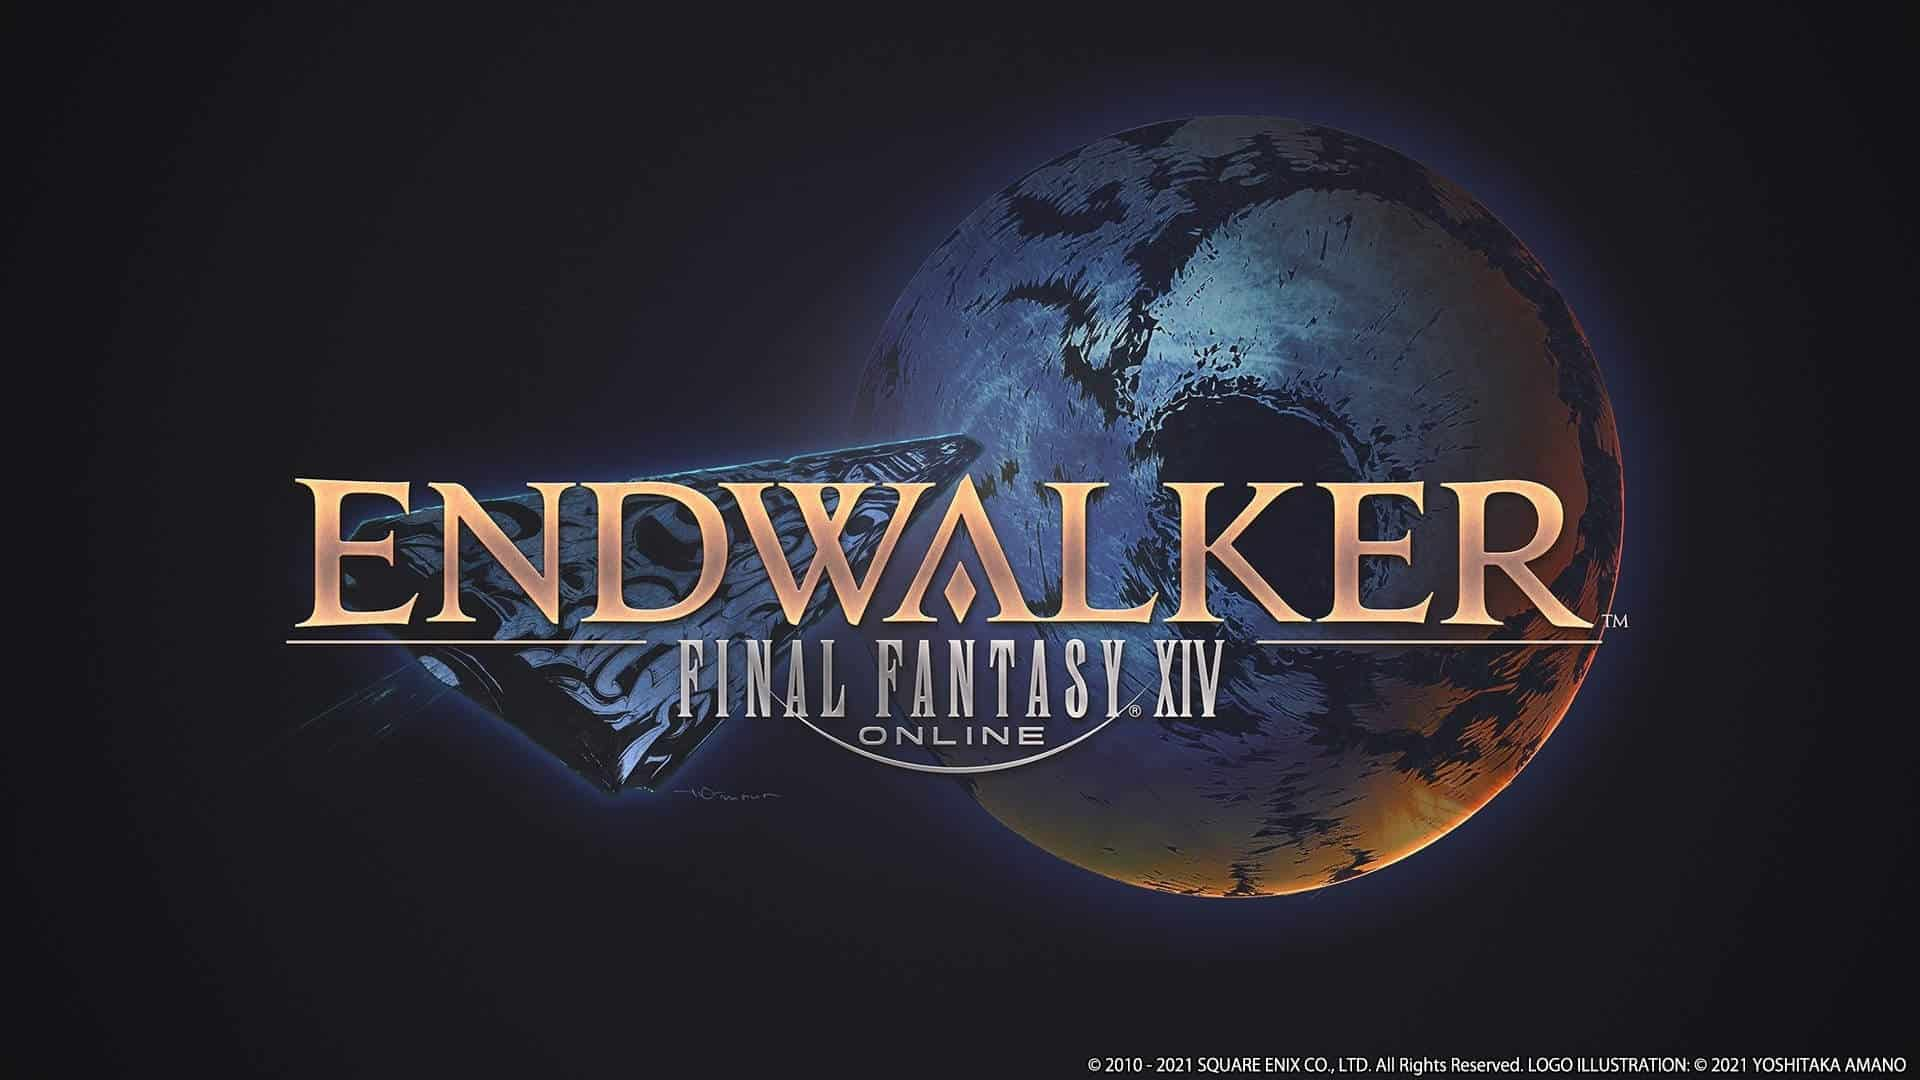 Final Fantasy XIV Endwalker - NEw Expansion Announced 2